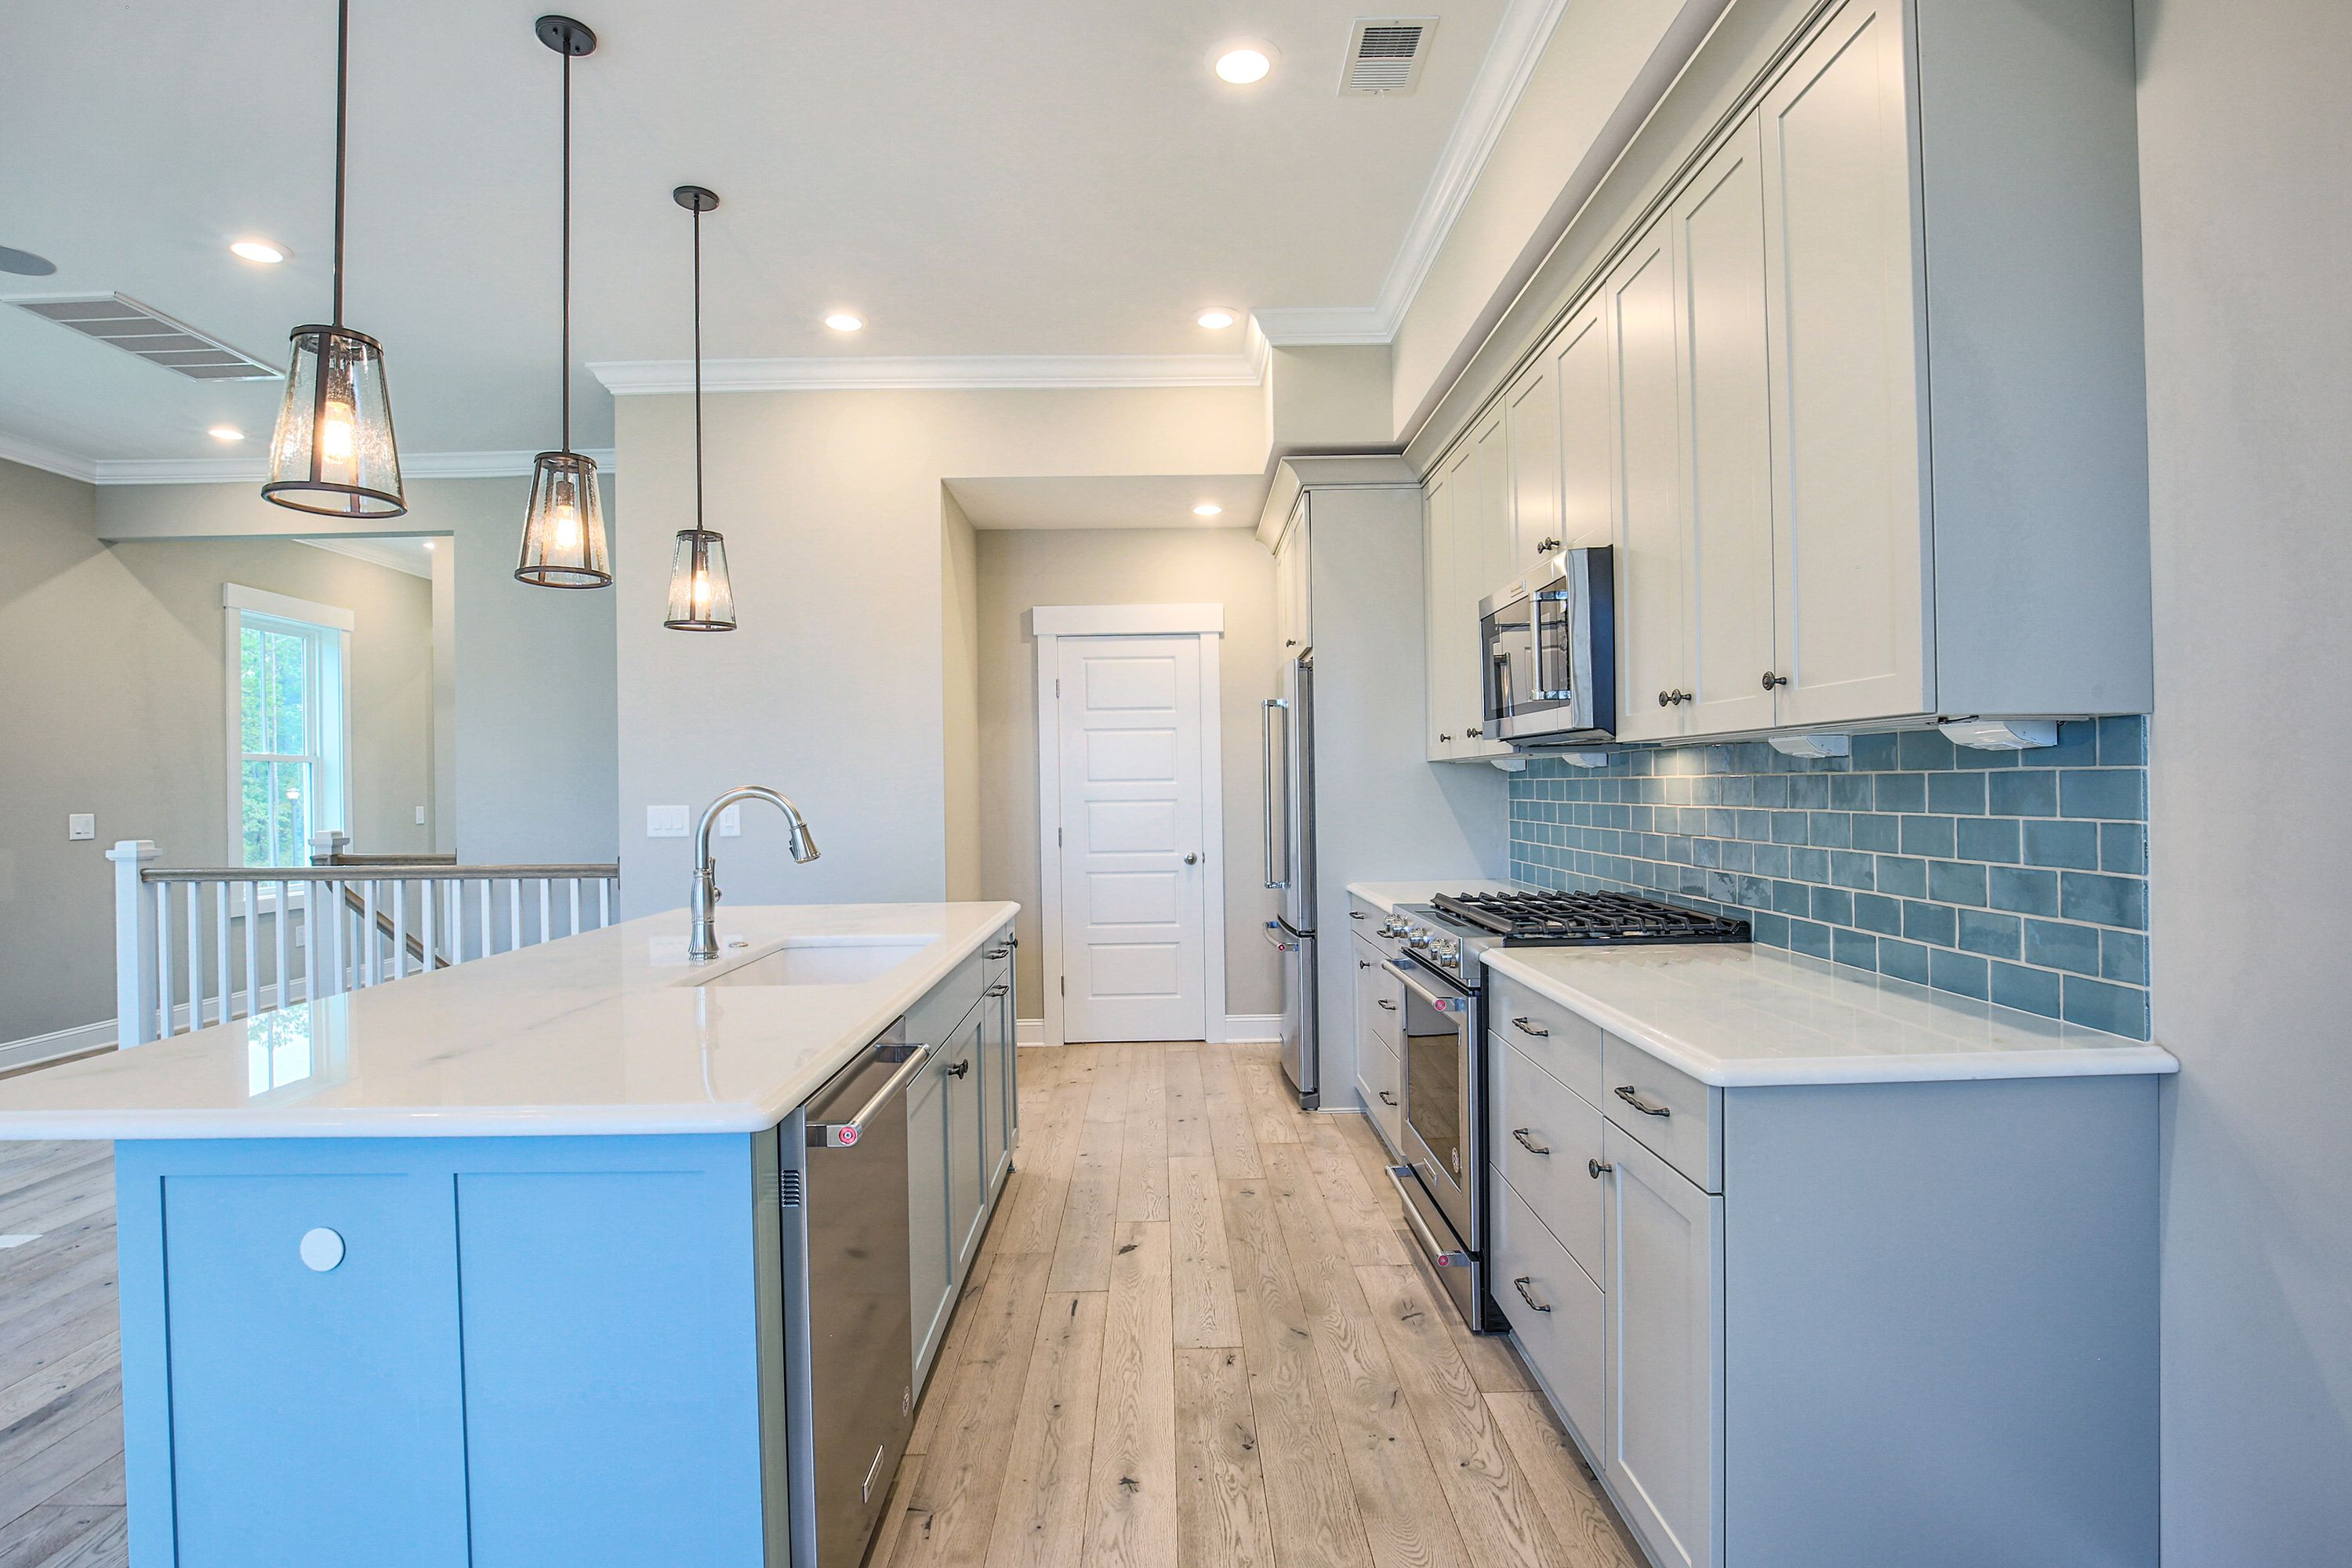 Kitchen featured in the Three Story Wraparound Porch Townhome By CRG Companies in Myrtle Beach, SC